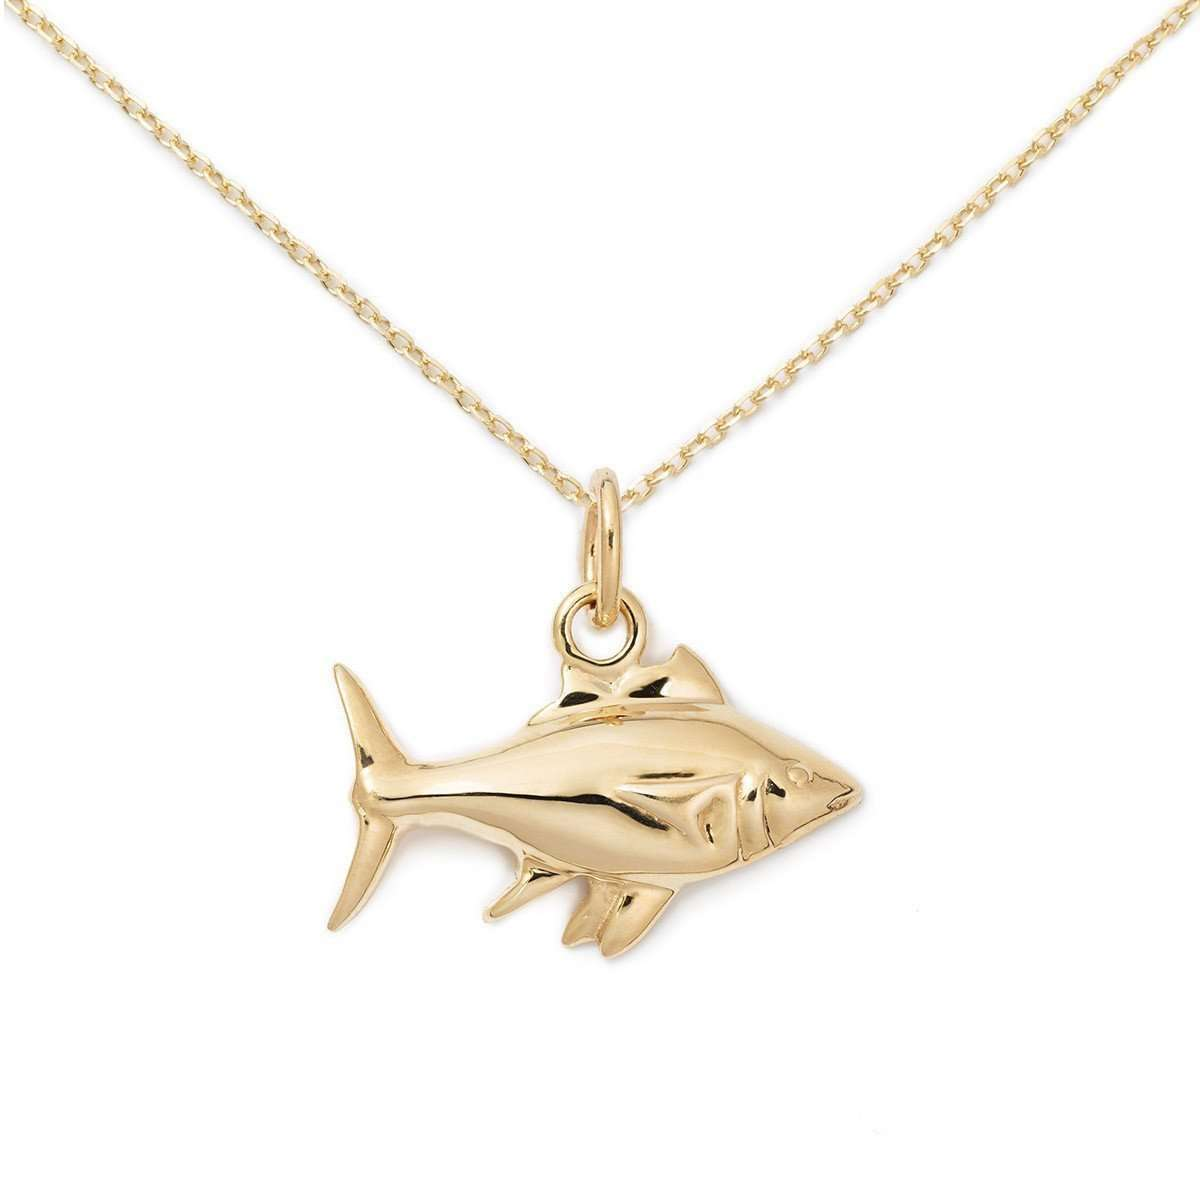 14K Gold Fish Necklace-Delicacies Jewelry-JewelStreet US